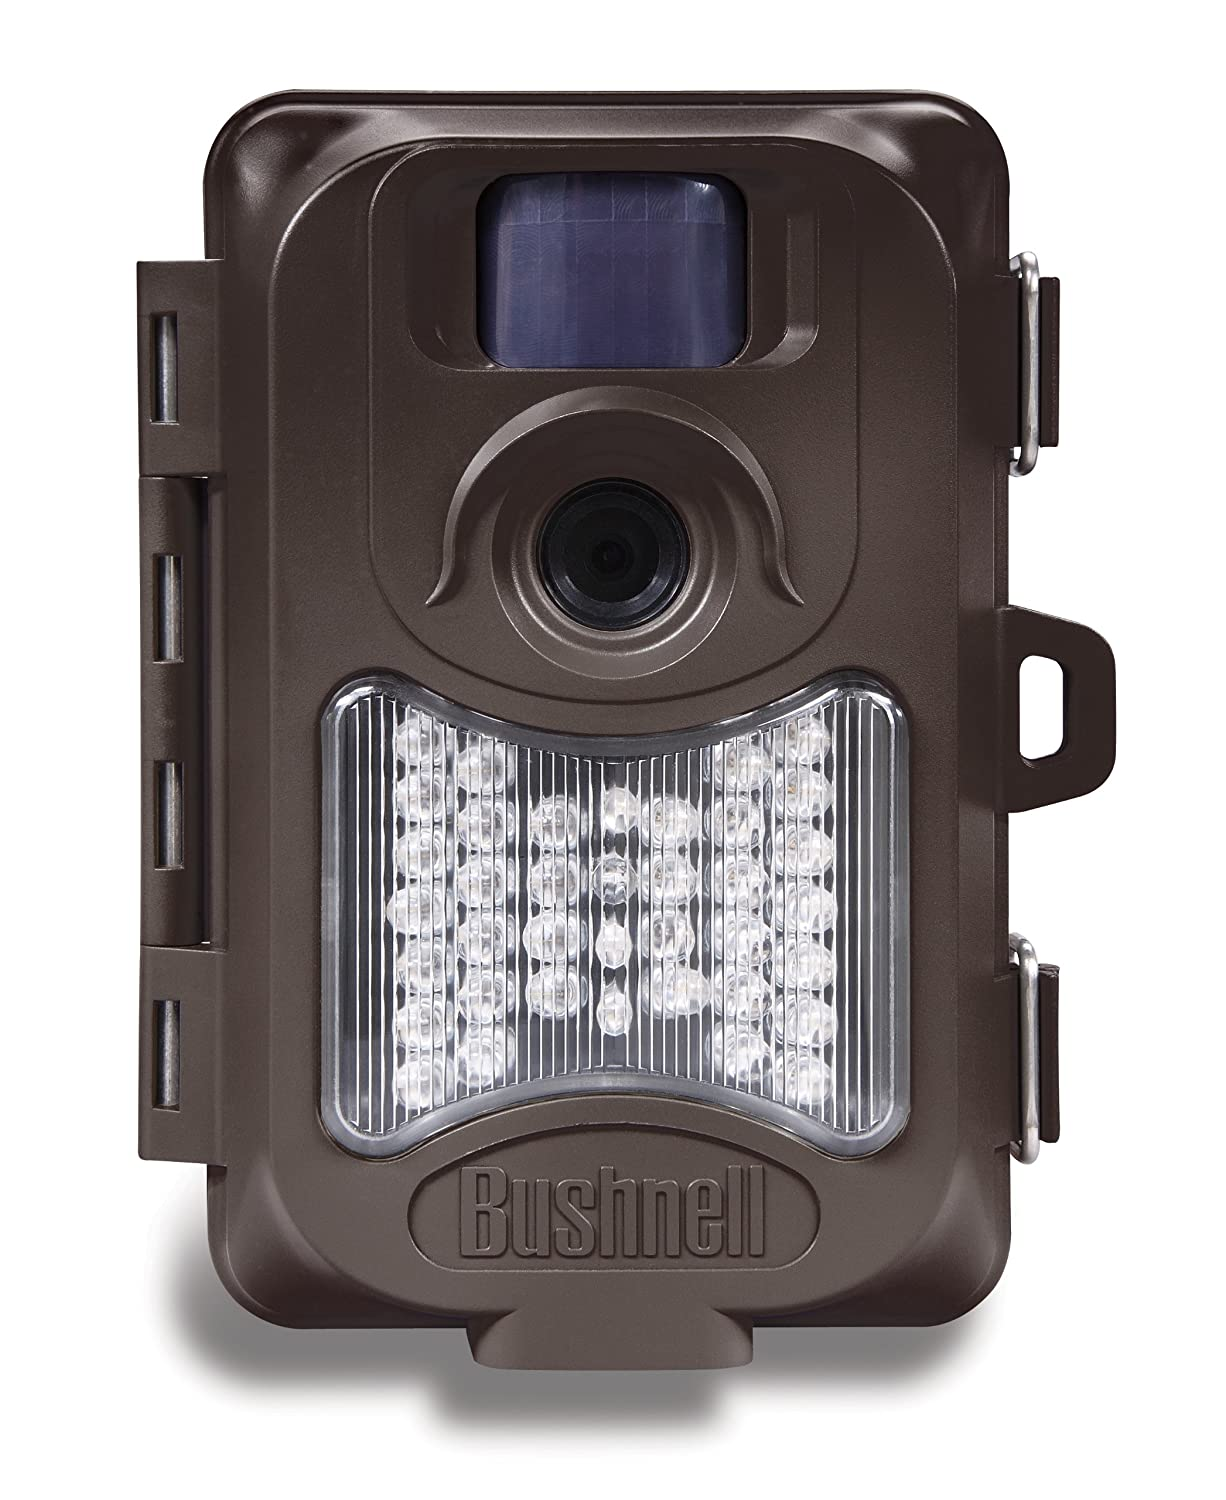 Amazon.com : Bushnell X-8 6MP Trail Camera with Night Vision and ...